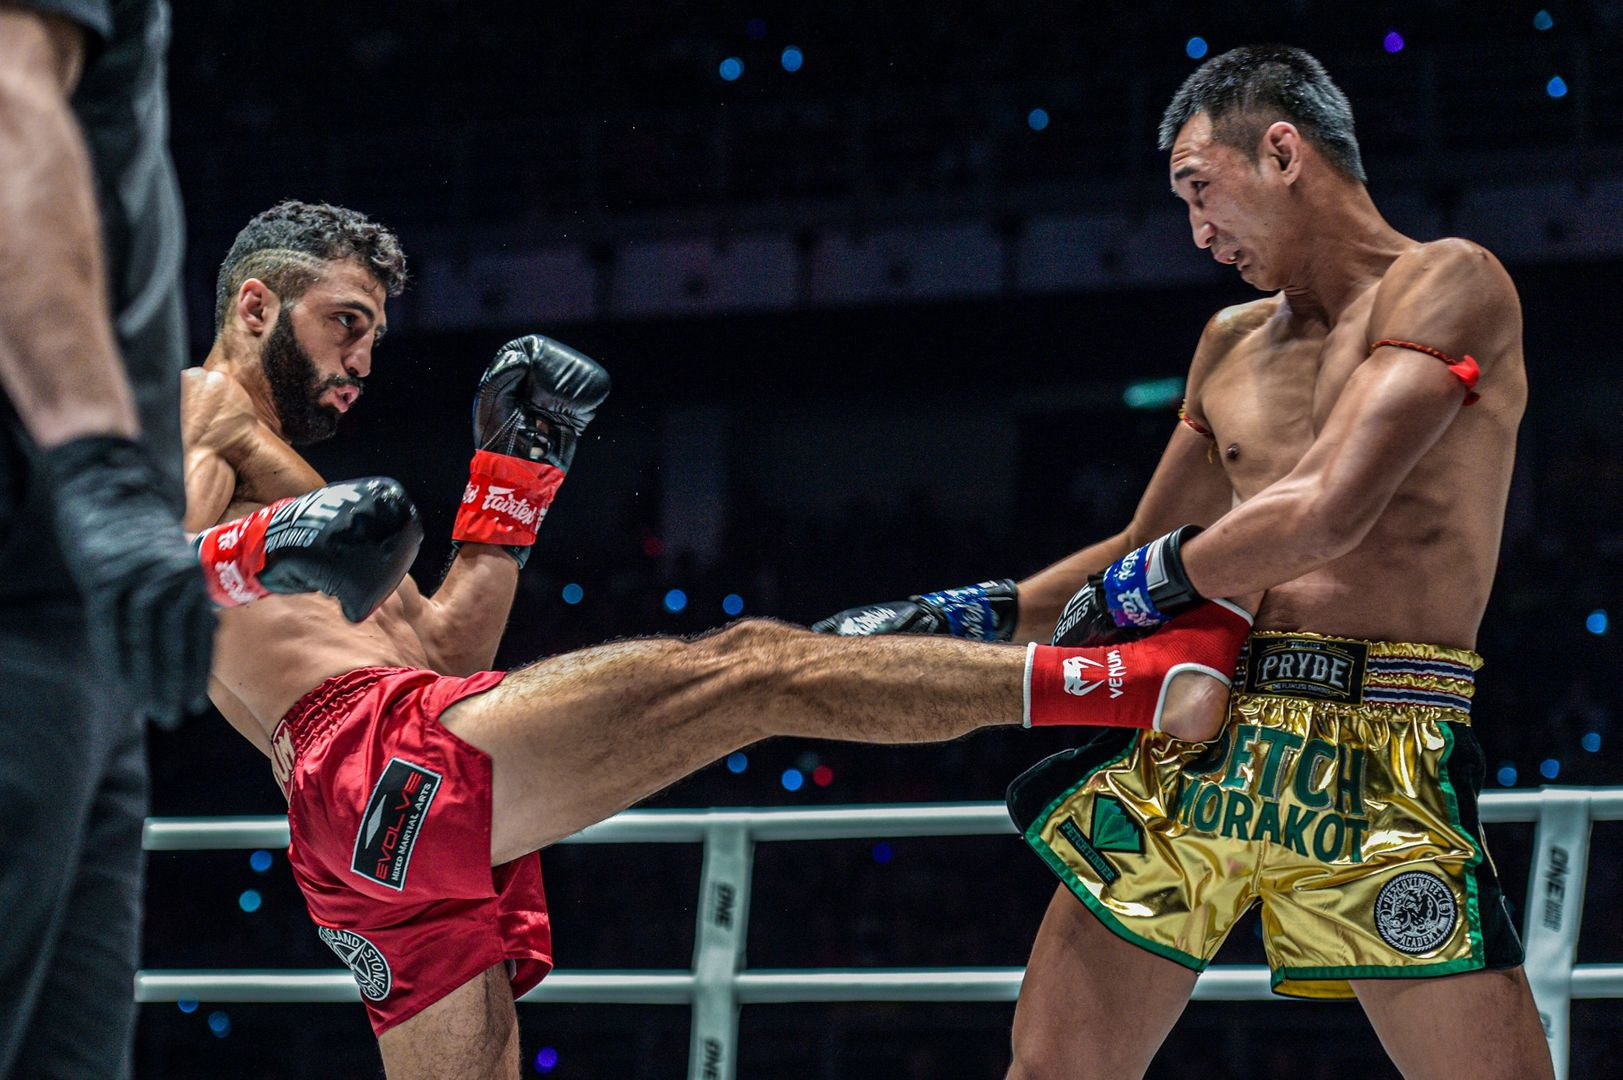 Armenian-Italian kickboxing great Giorgio Petrosyan hits the teep